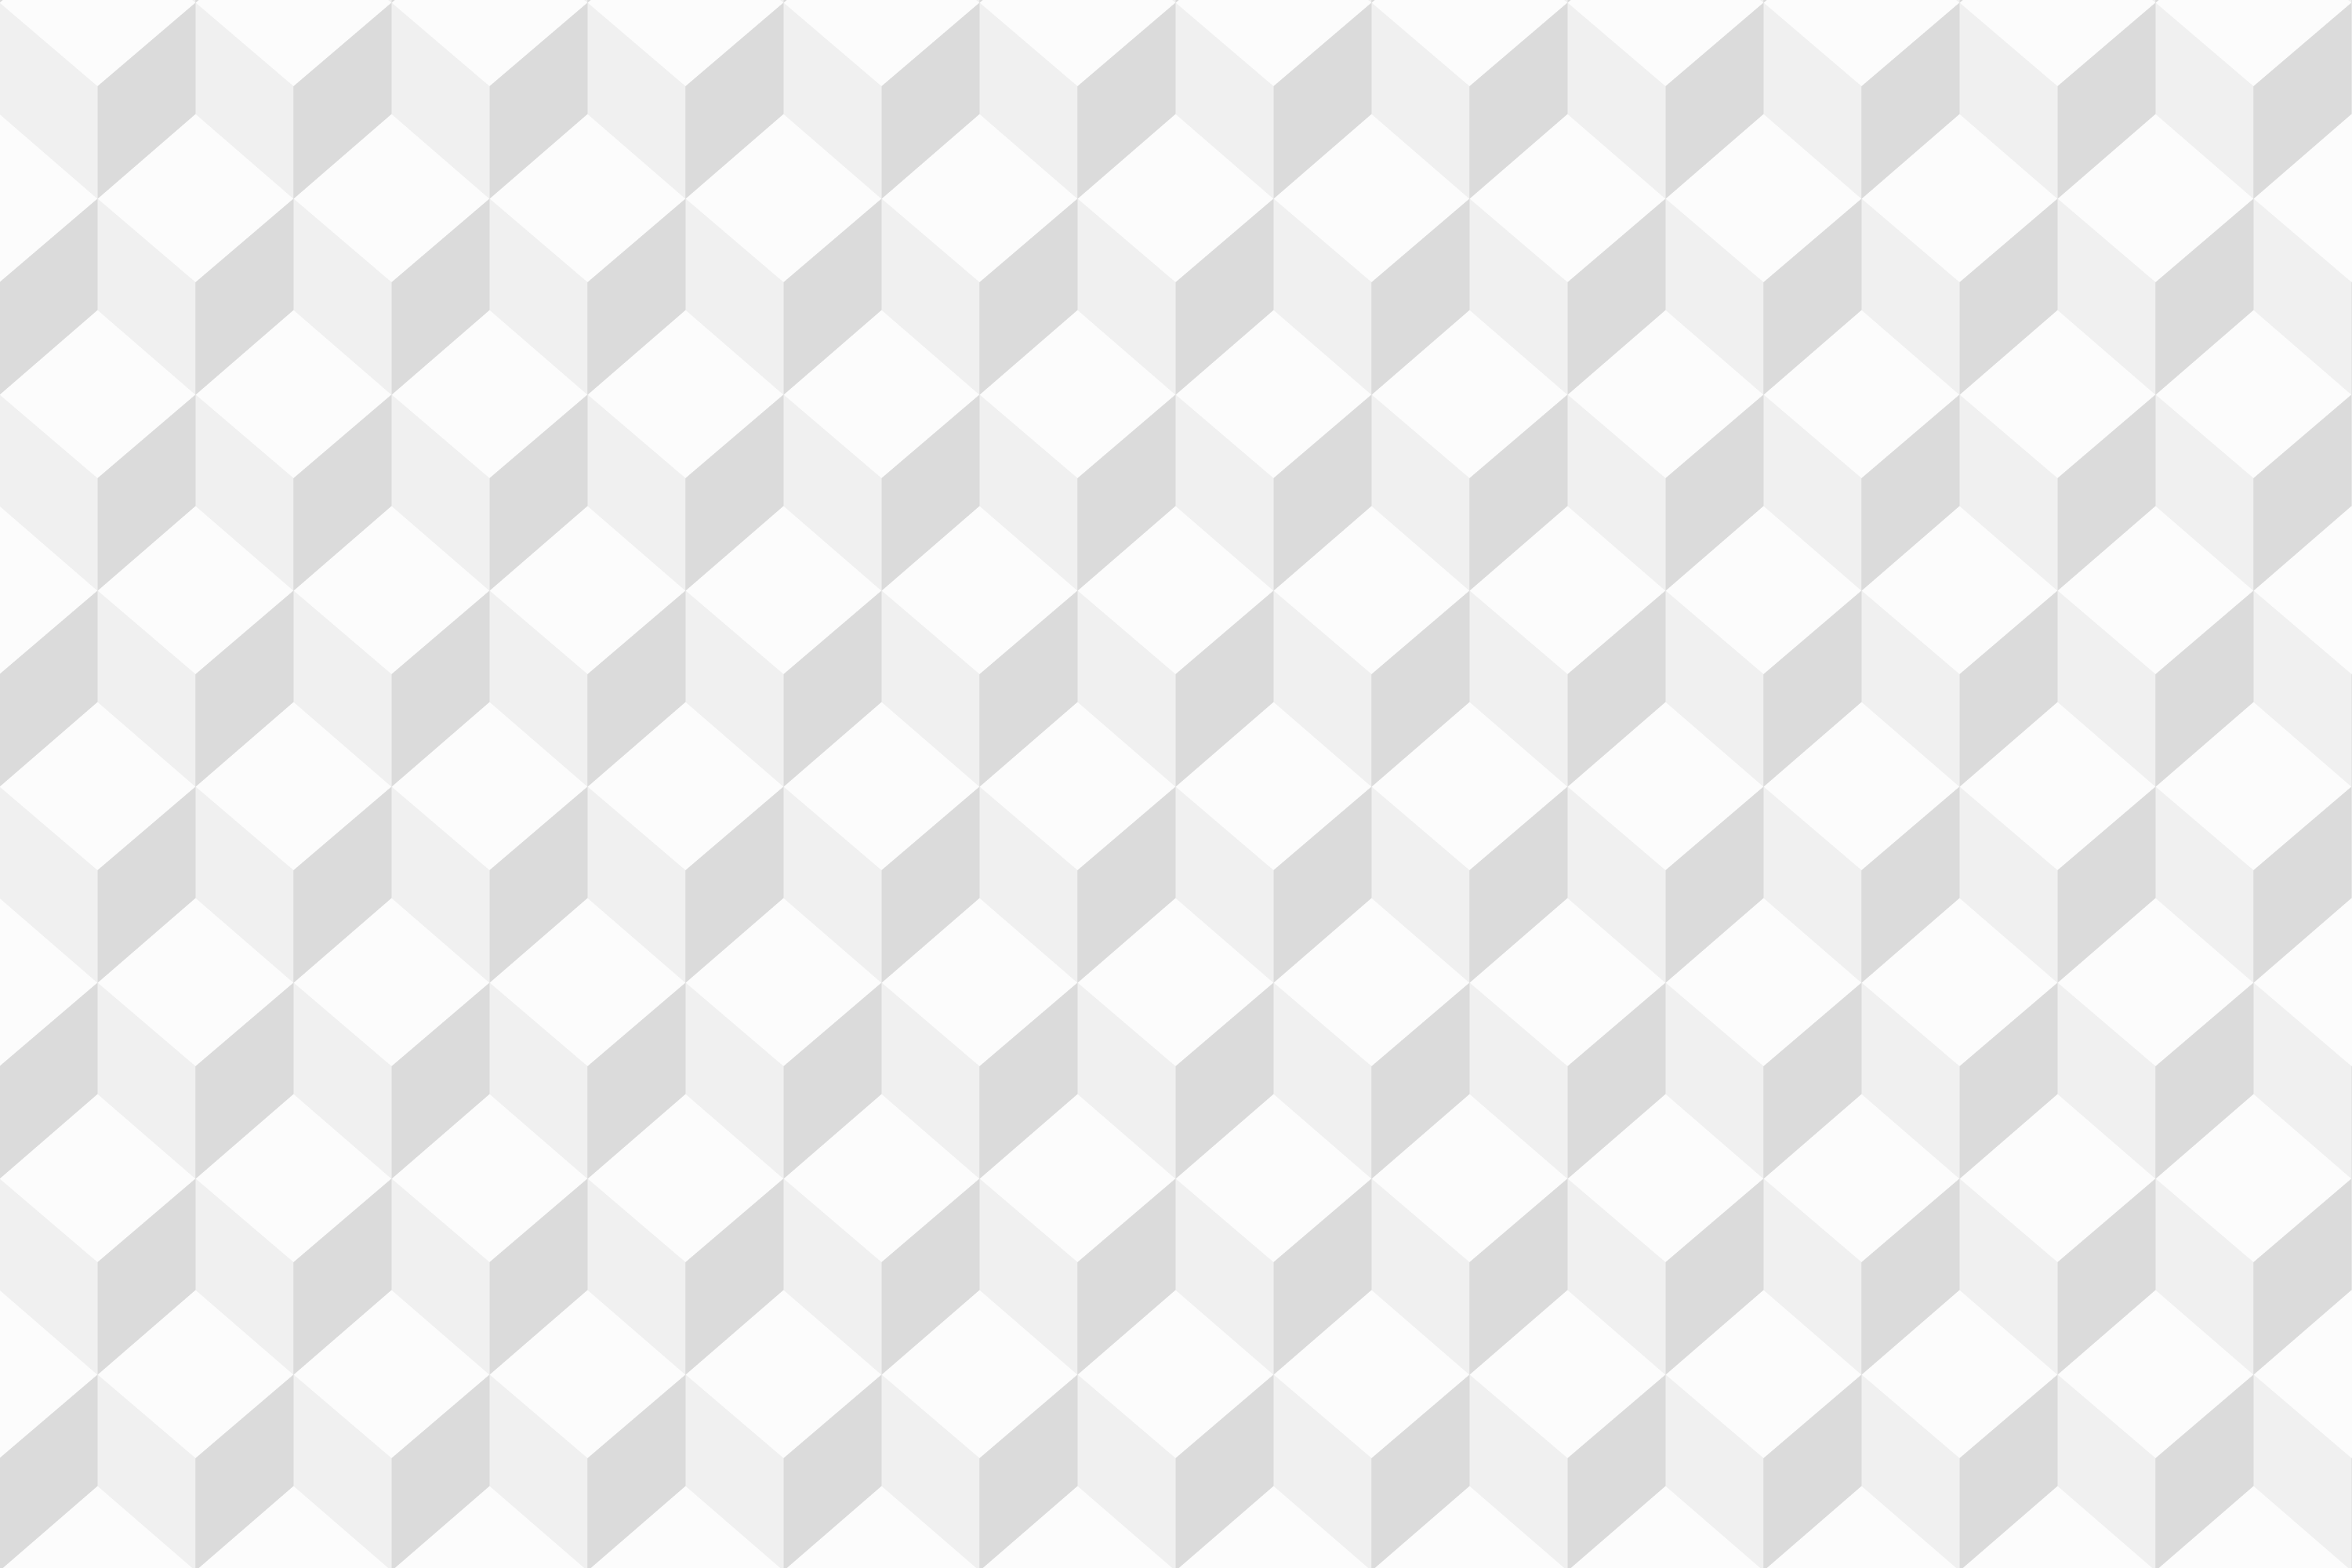 White background cubes relief geometric-patternpictures-0220